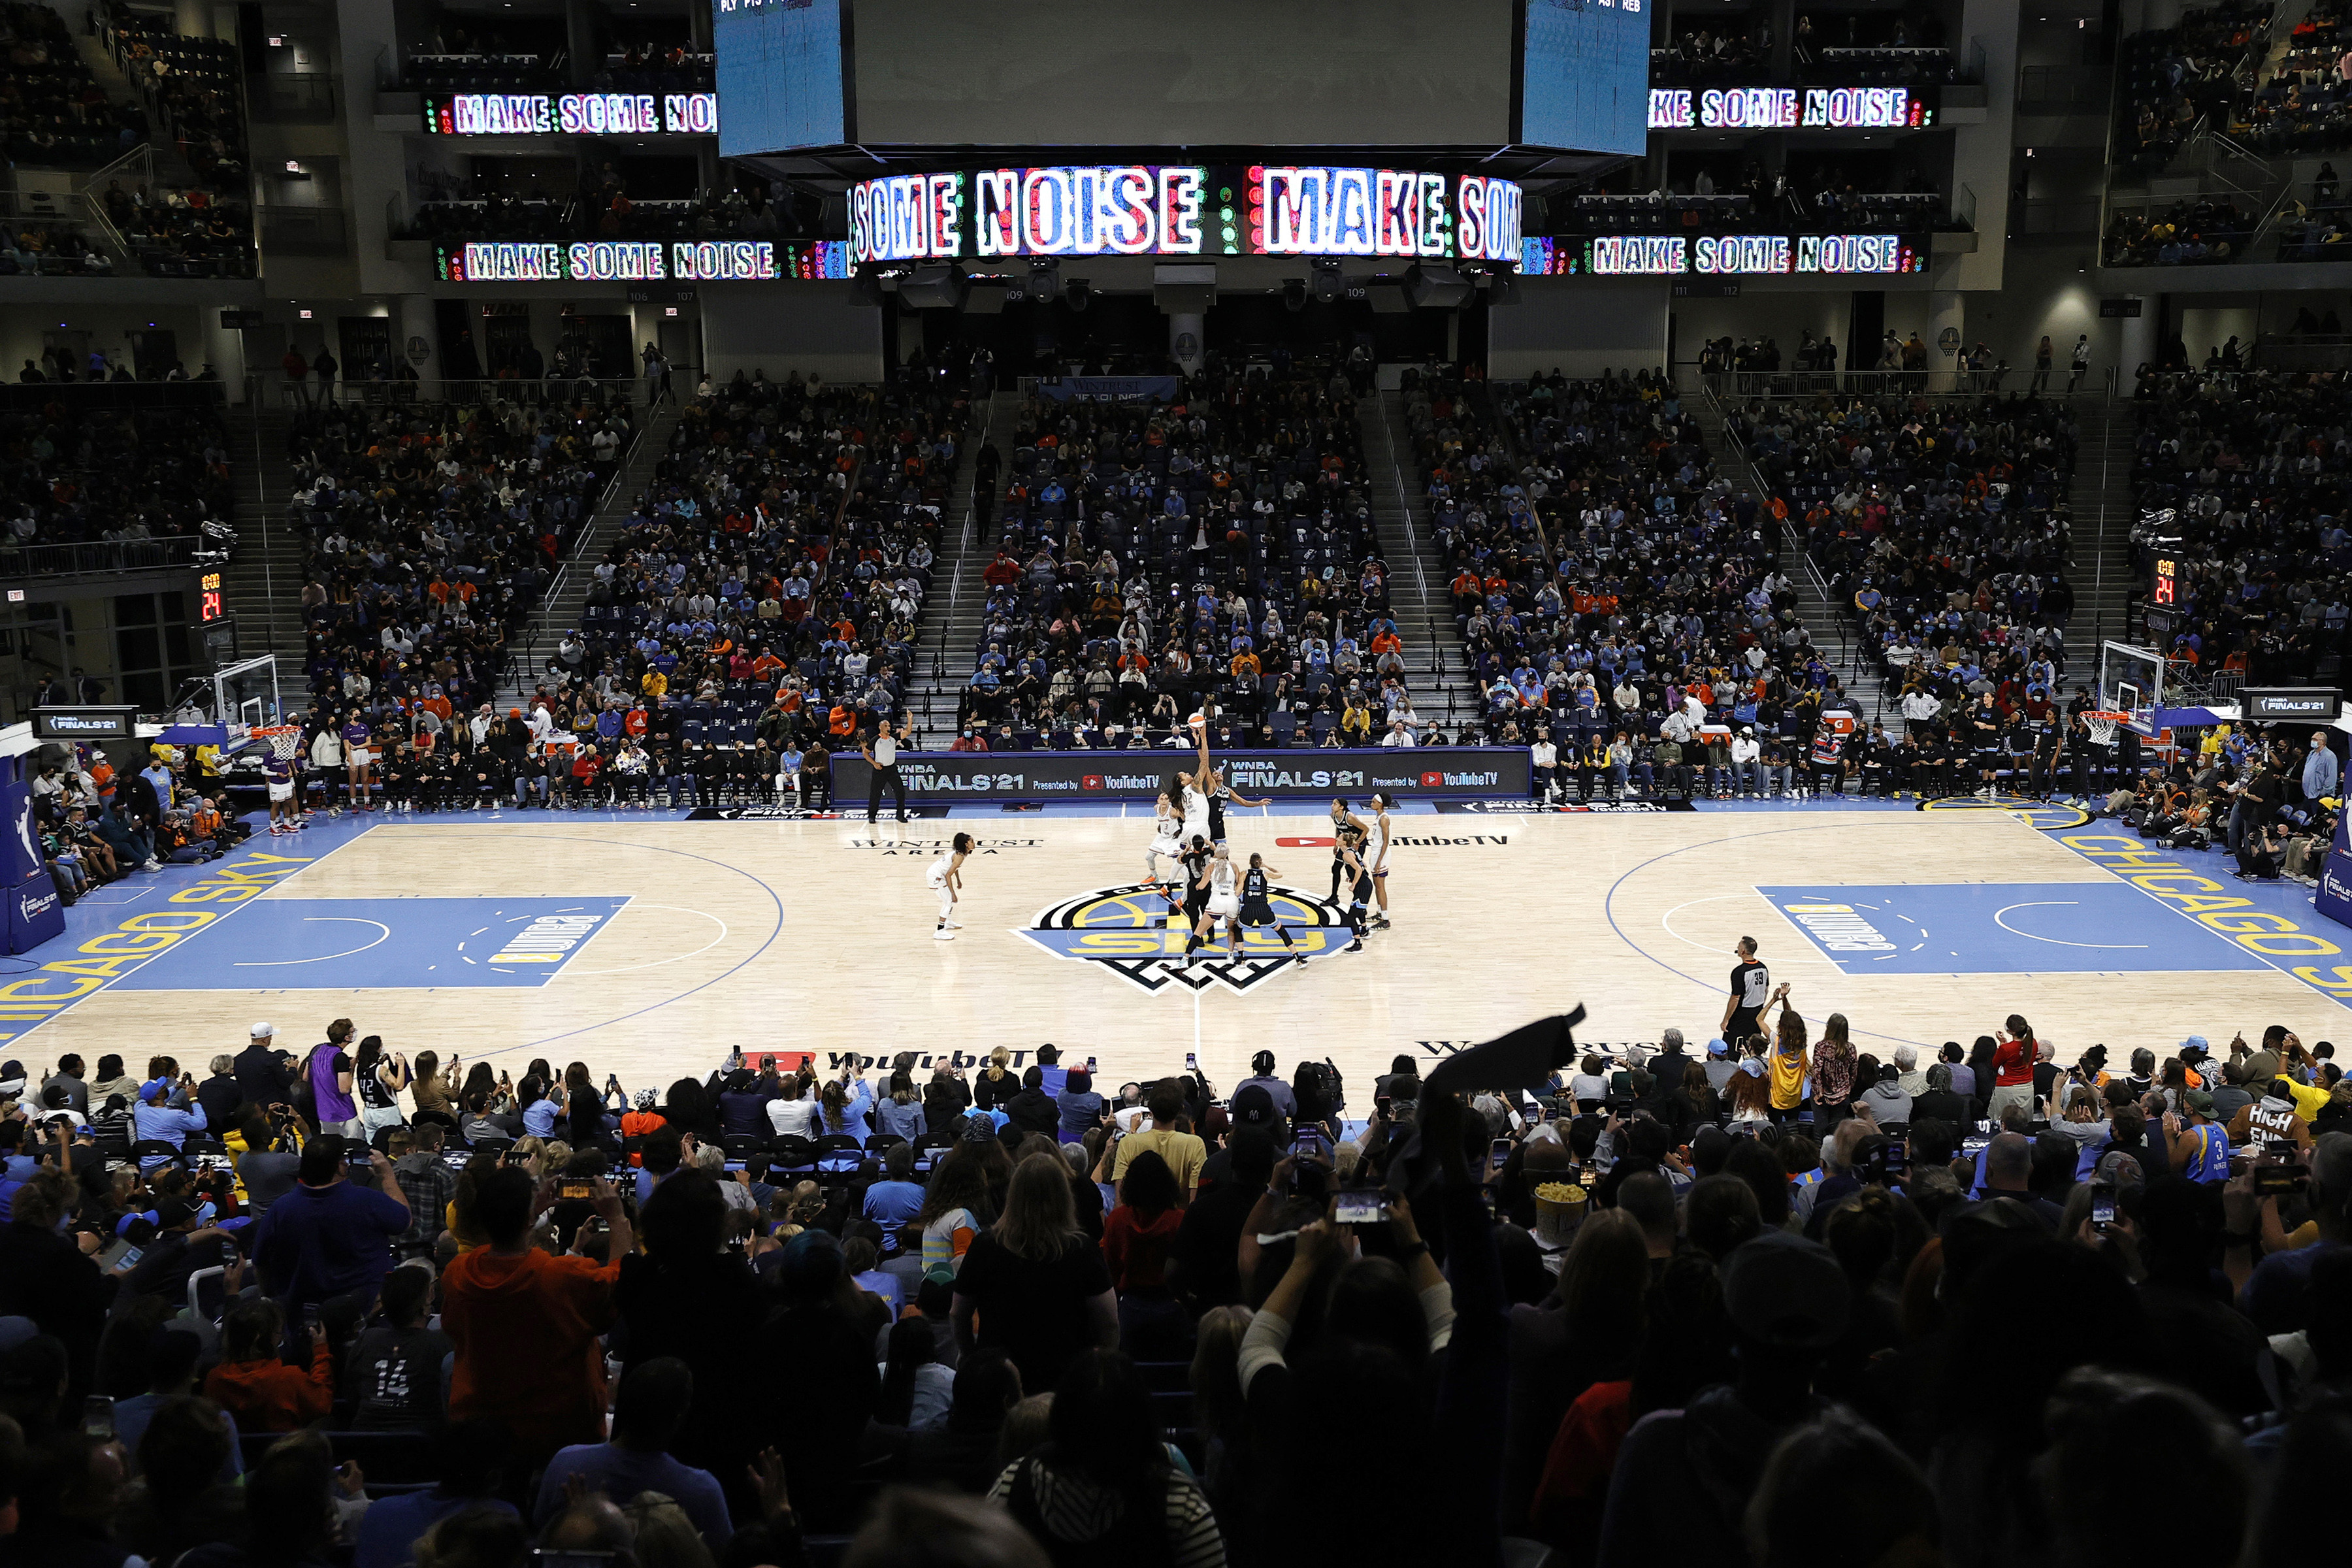 WNBA Finals: Chicago Sky Ticket Prices Soar for Potential Clincher